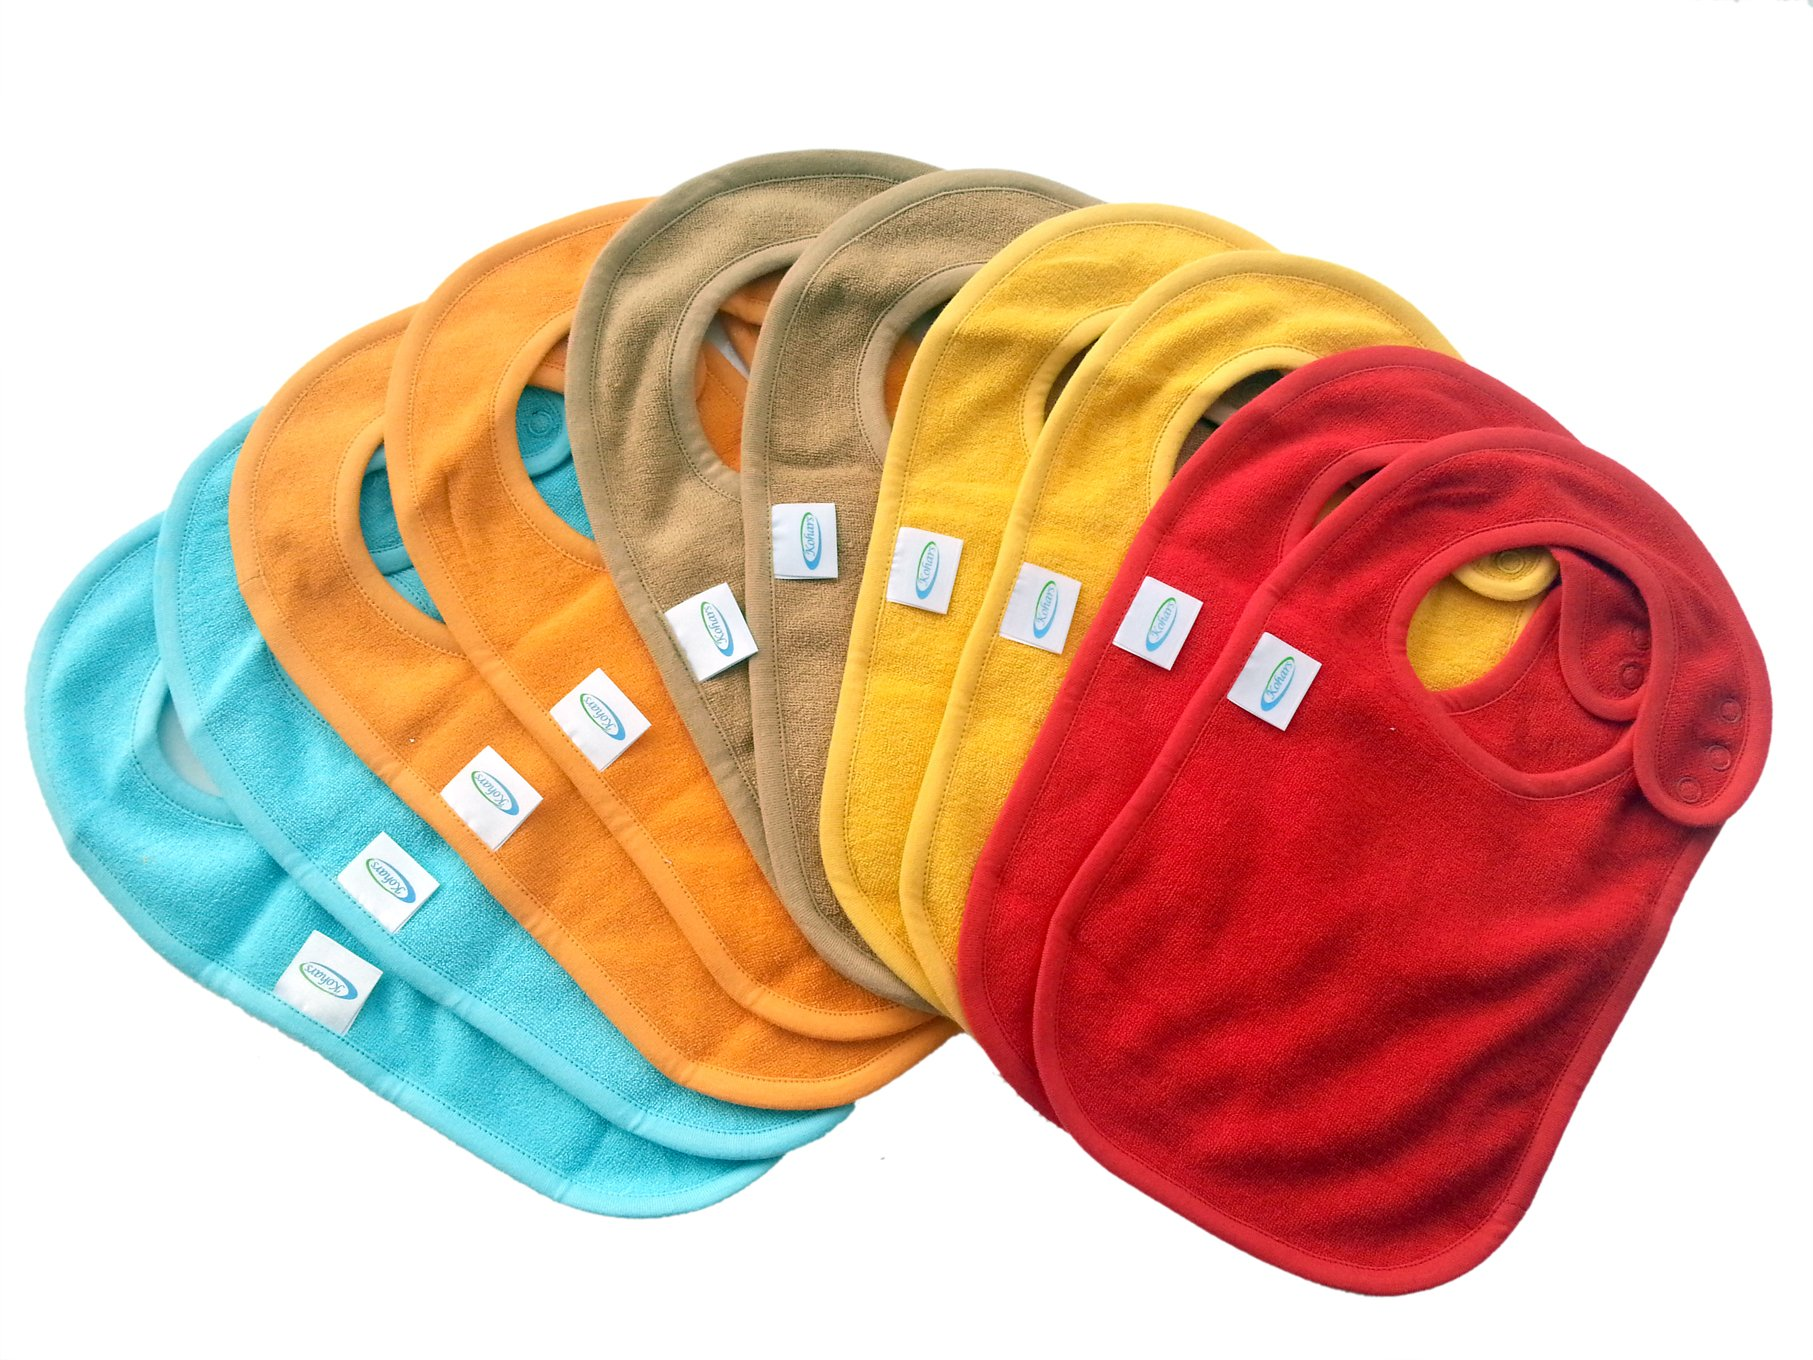 Baby Bibs with Snap Closures Solid Colors (10 Pack) by Kohars. 100% Cotton Absorbent Reversible Unisex Teething Dribble Bibs. Perfect for Newborn Infant Toddlers & Baby Shower and Gift Basket